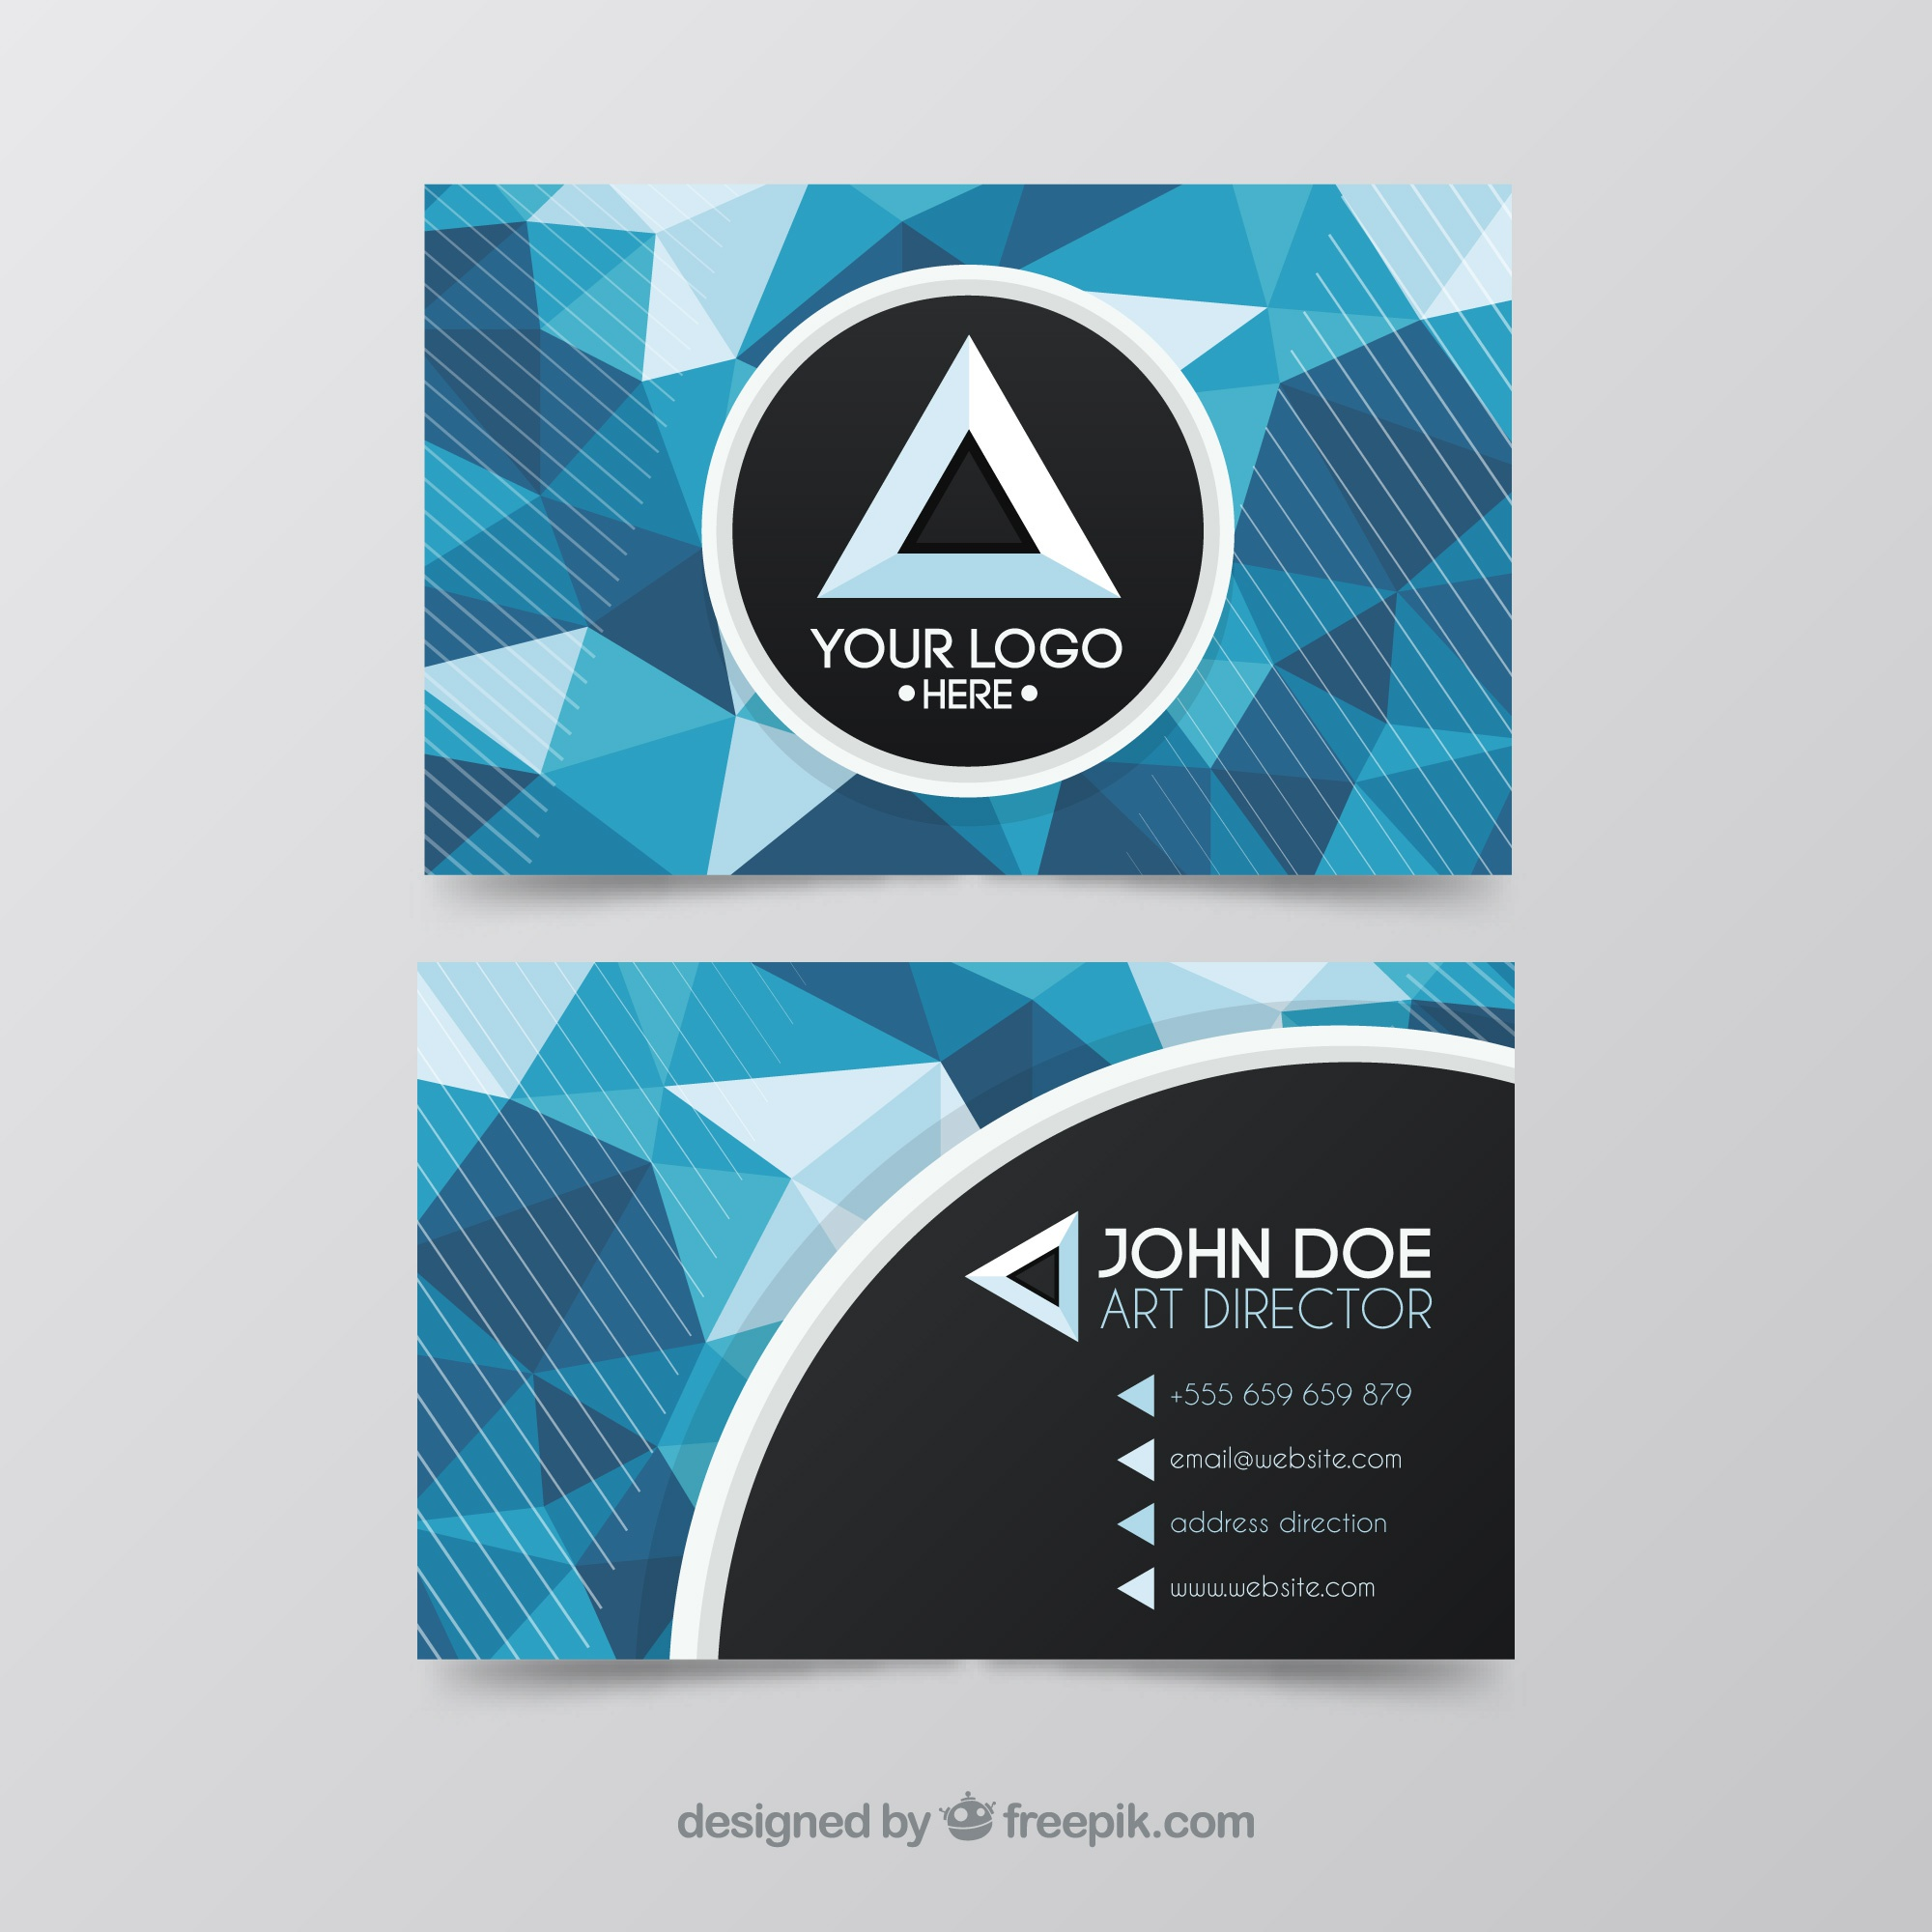 Visiting card with blue polygonal shapes